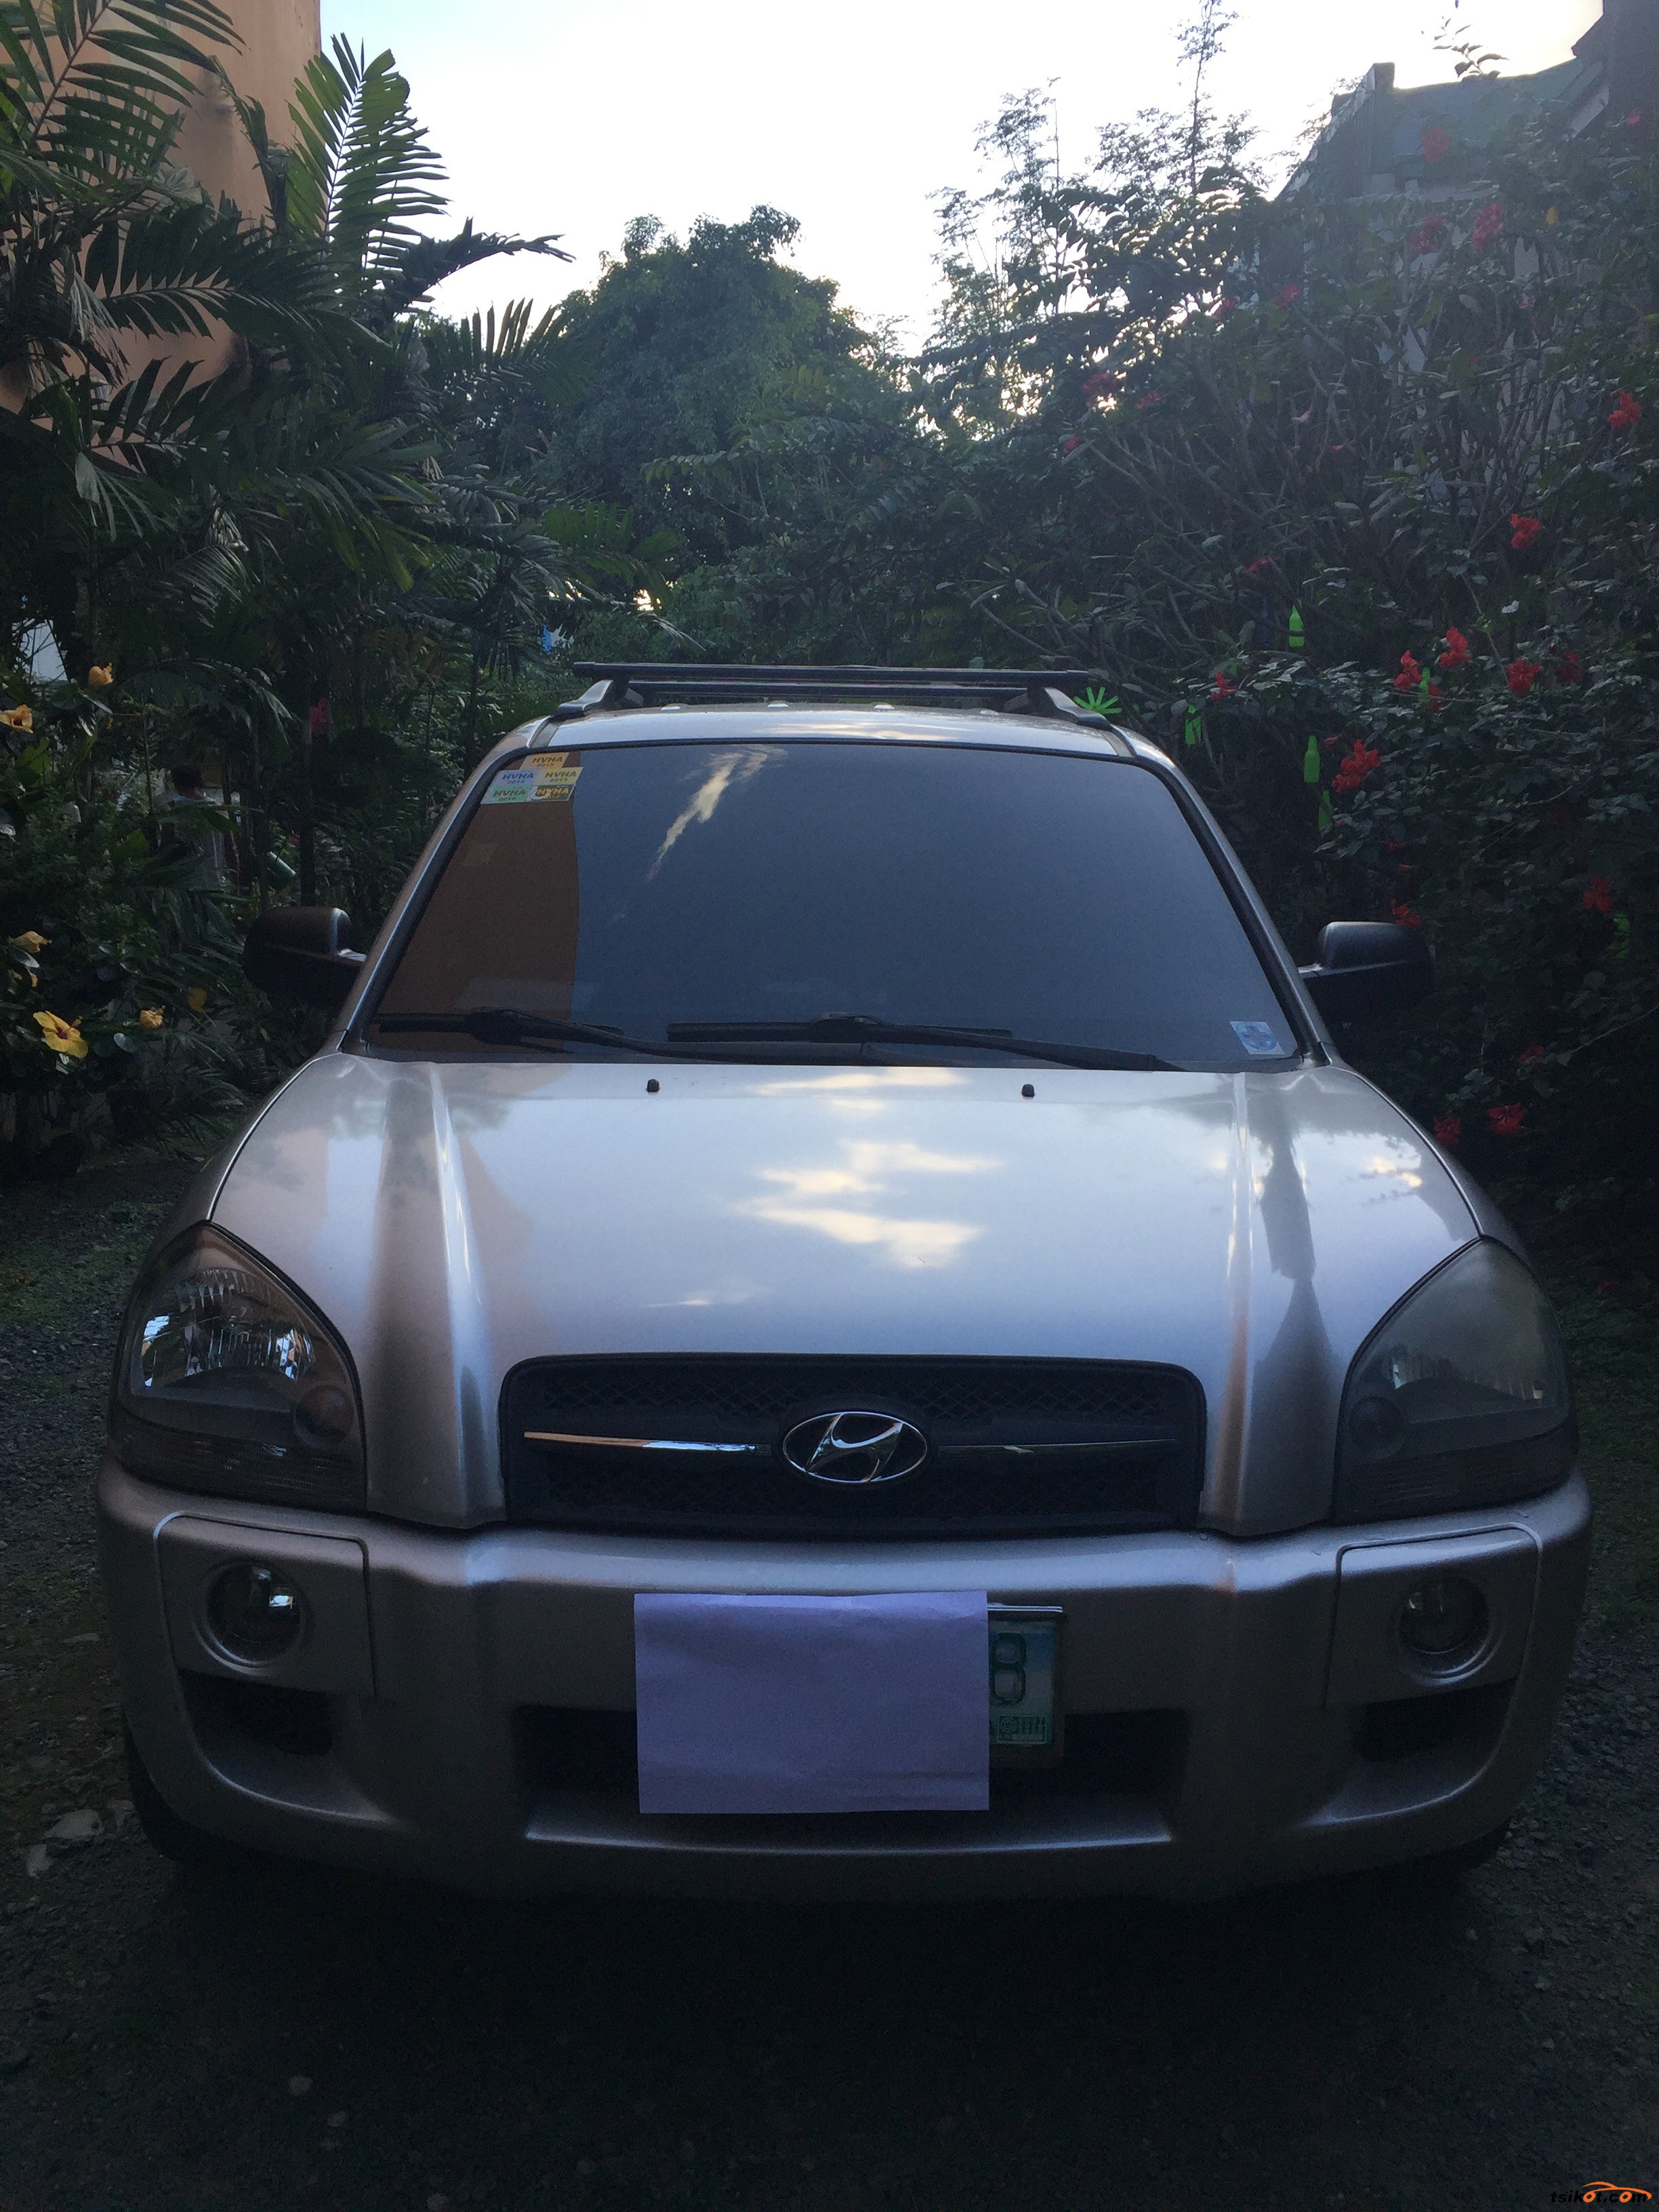 hyundai tucson 2007 car for sale metro manila. Black Bedroom Furniture Sets. Home Design Ideas